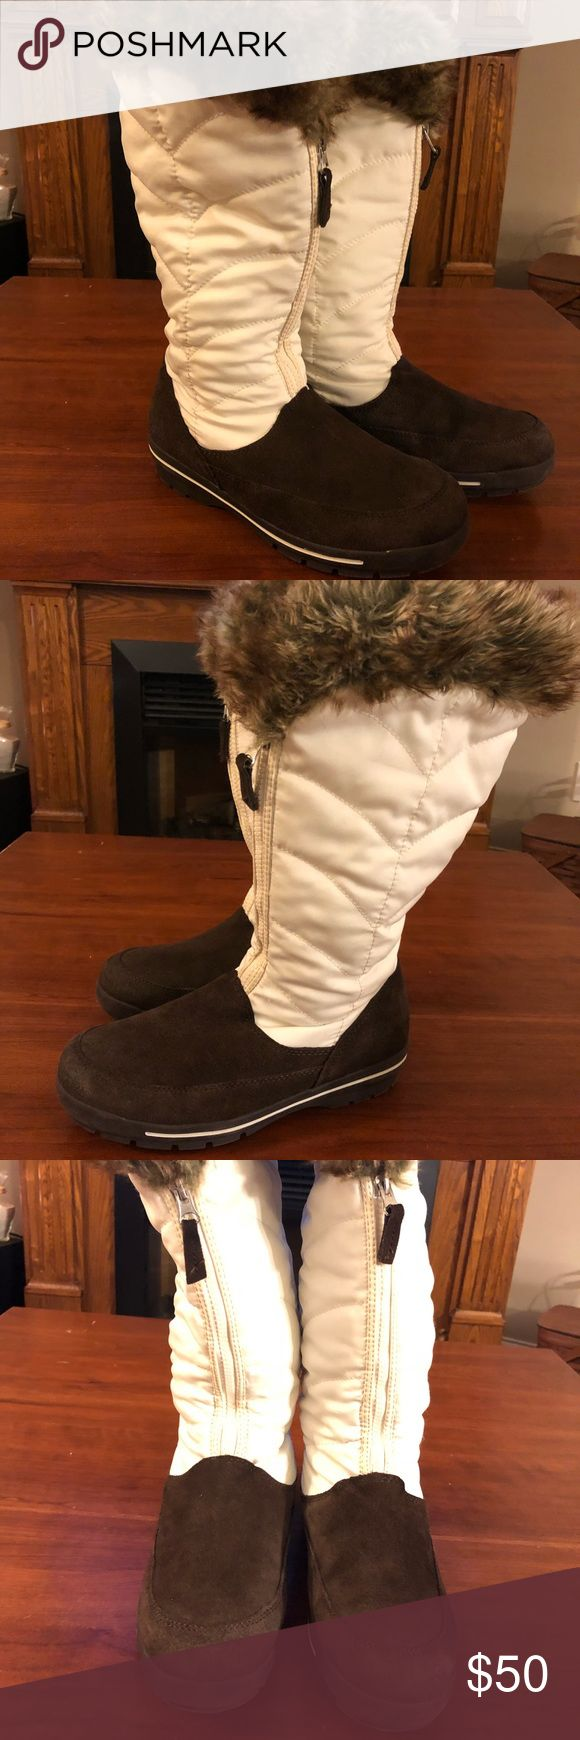 Lands End women's winter boots suede/lined 8.5 Lands End women's winter boots suede bottom and cream upper topped with faux fur and lined with fleece. Size 8.5. Good used condition. Lands' End Shoes Winter & Rain Boots